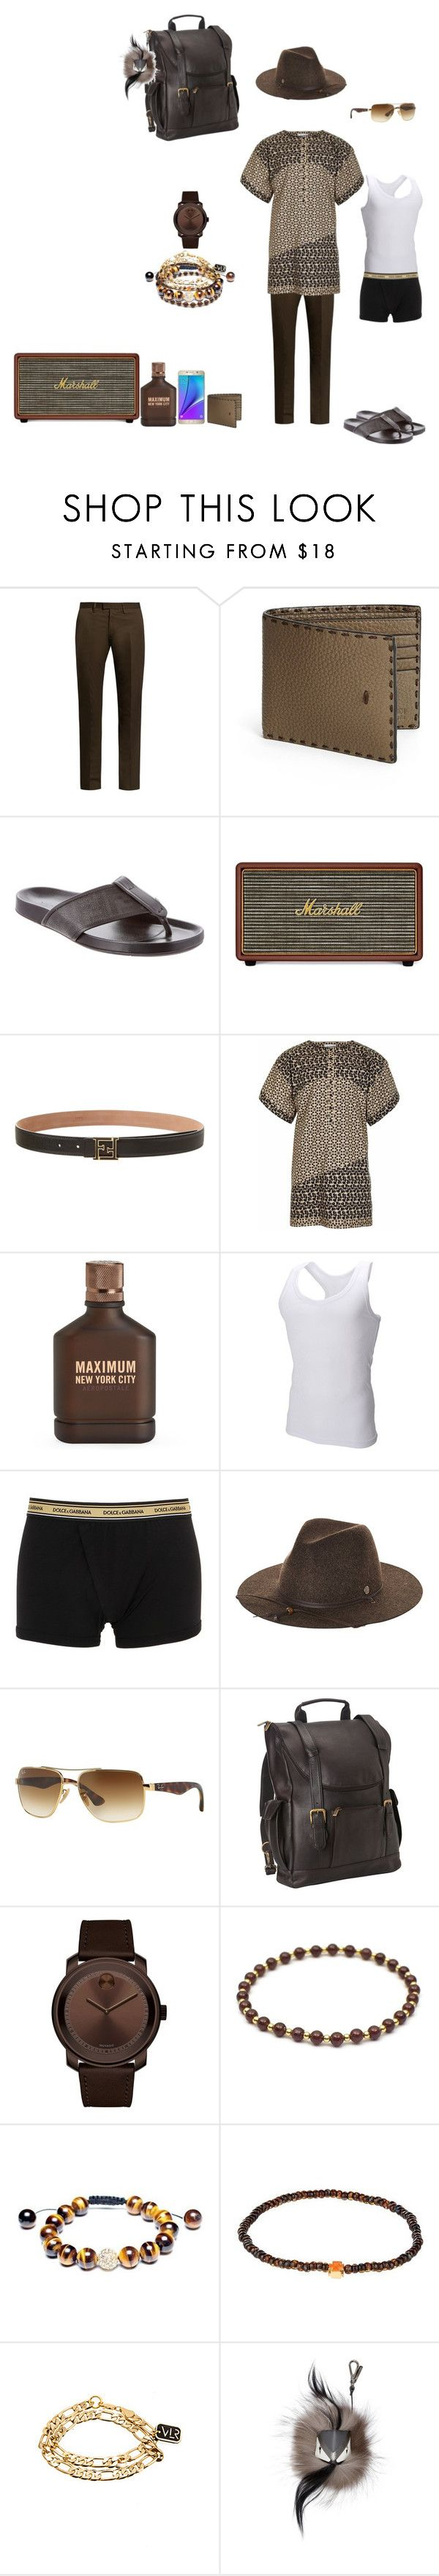 """""""Retro!"""" by k-harm-1220 ❤ liked on Polyvore featuring Acne Studios, Fendi, Stanmore, JIRI KALFAR, Aéropostale, Samsung, Dolce&Gabbana, Coal, Ray-Ban and Le Donne"""